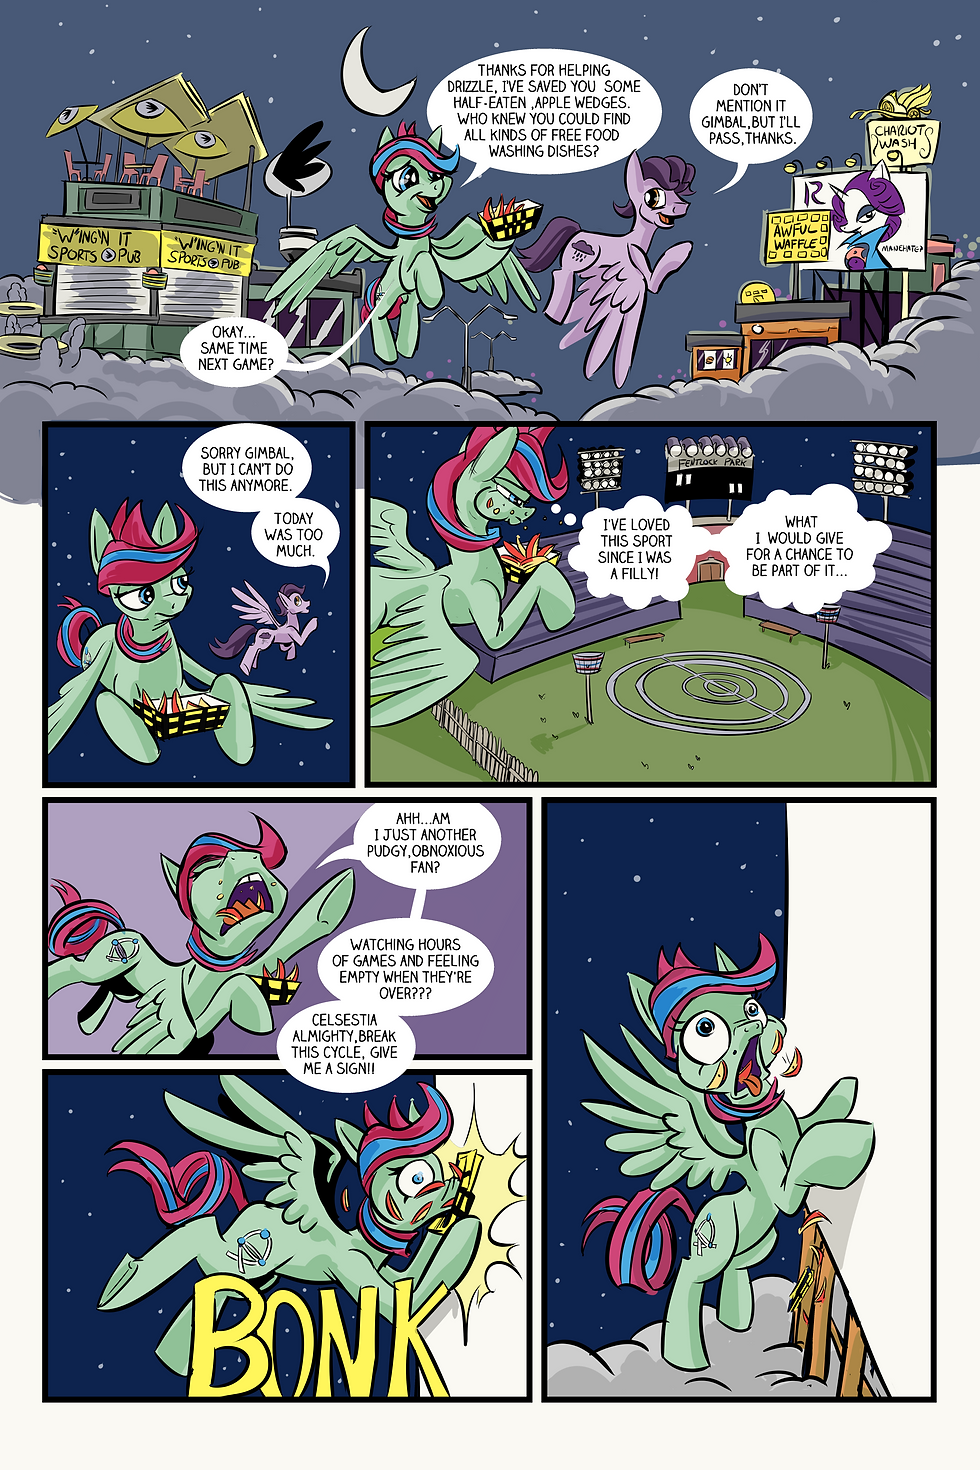 Ponies in the Outfield 03.png